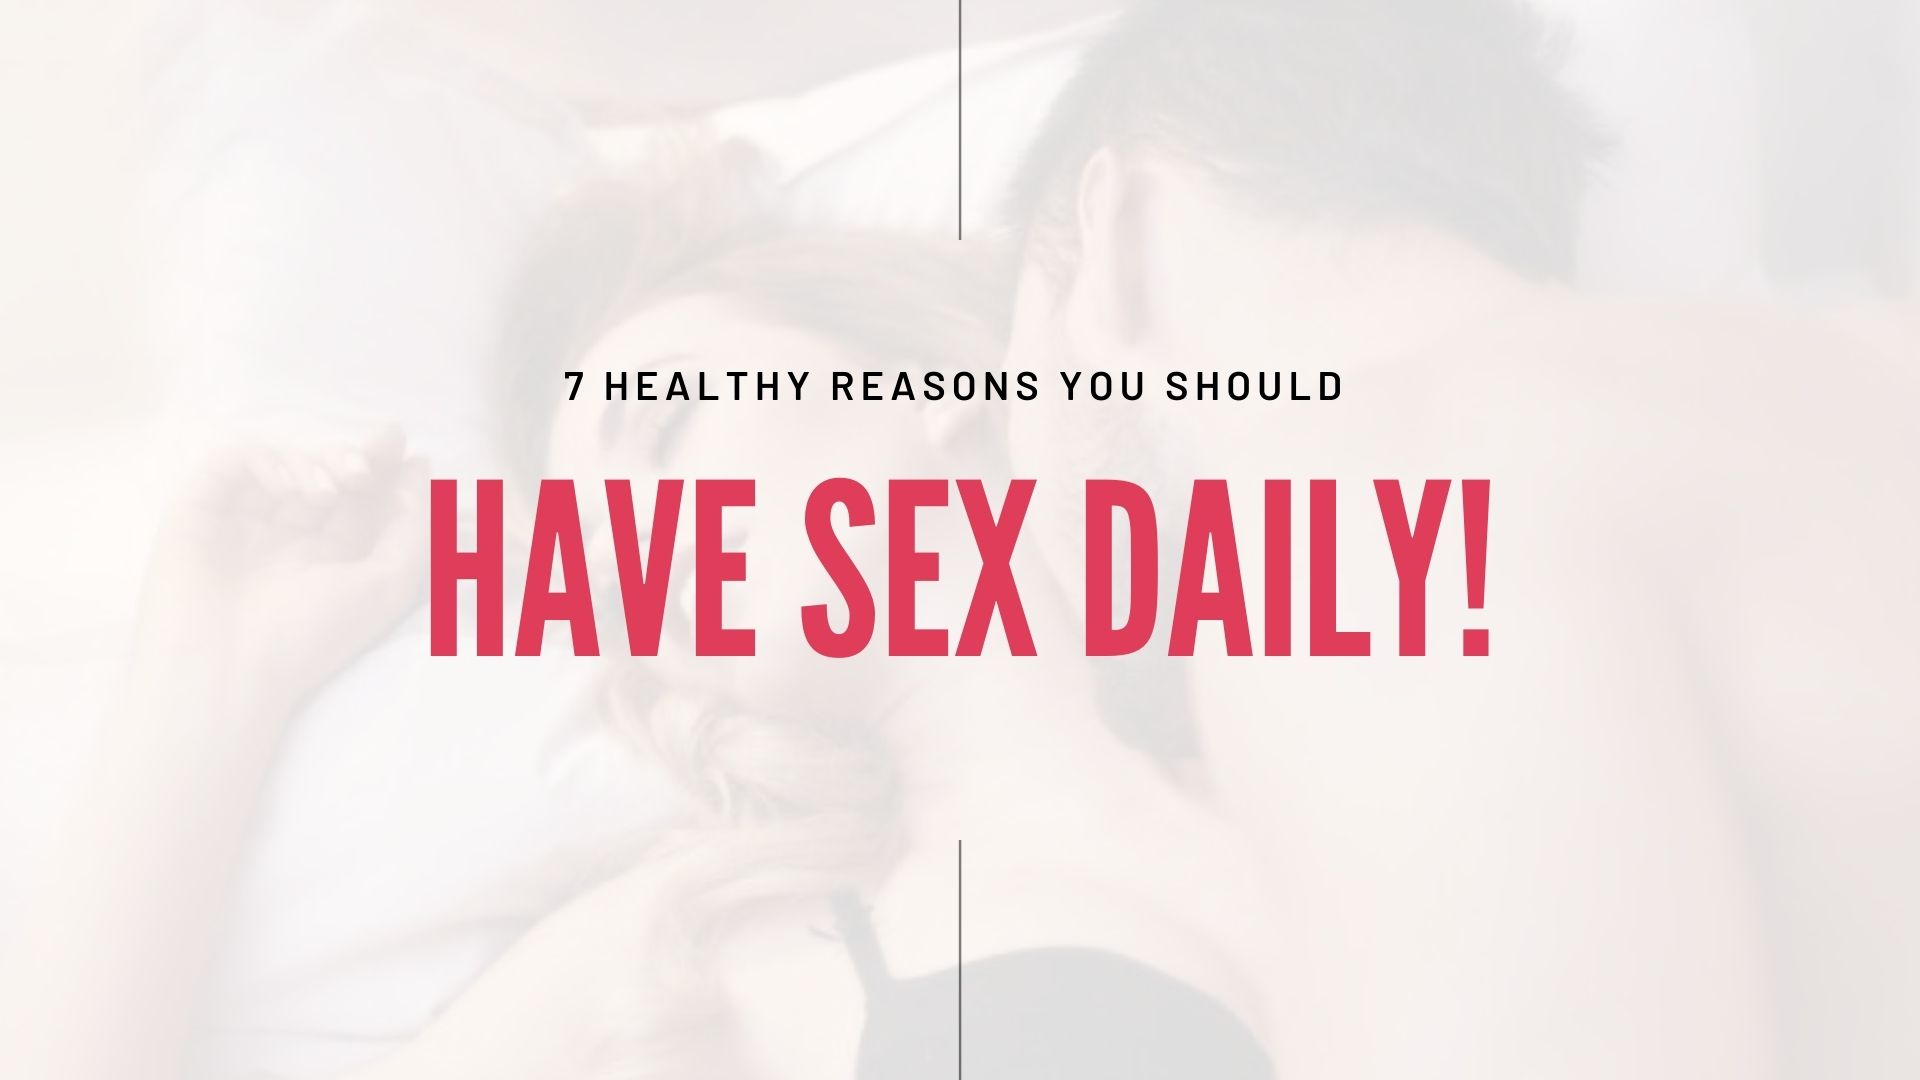 7 Healthy Reasons You Should Have Sex Daily!